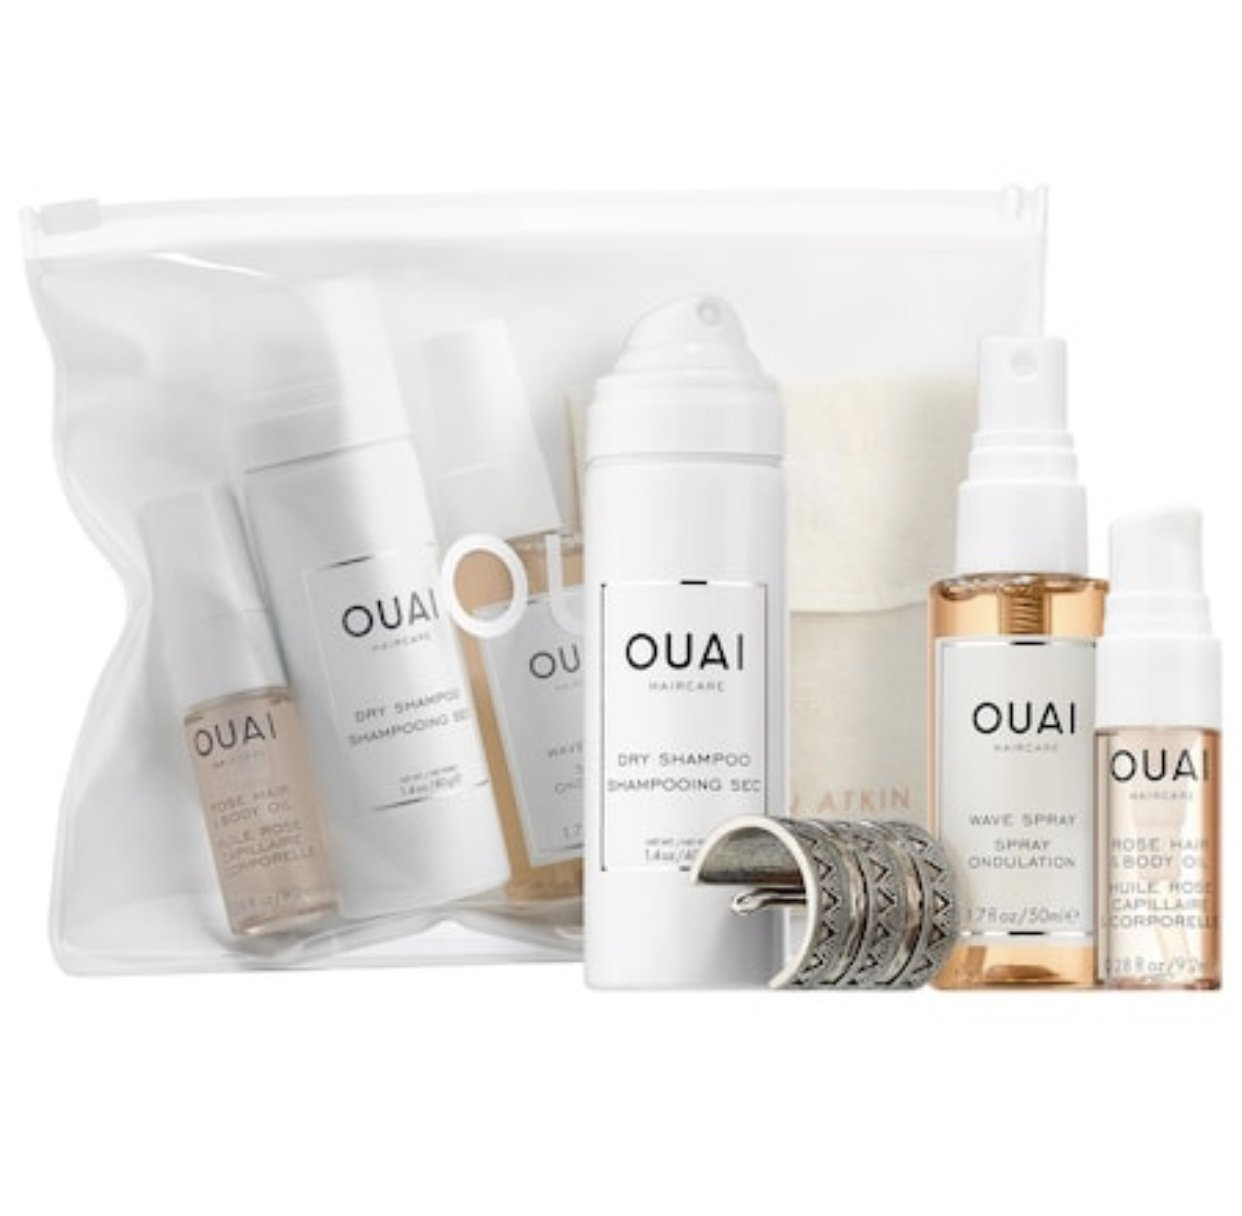 Ouai Desert OUAIsis Festival Kit: Rose Hair & Body Oil, Dry Shampoo Foam, Wave Spray, Jen Atkin x Chloe + Isabel Ponytail Piece (Limited Edition) by Ouai (Image #1)